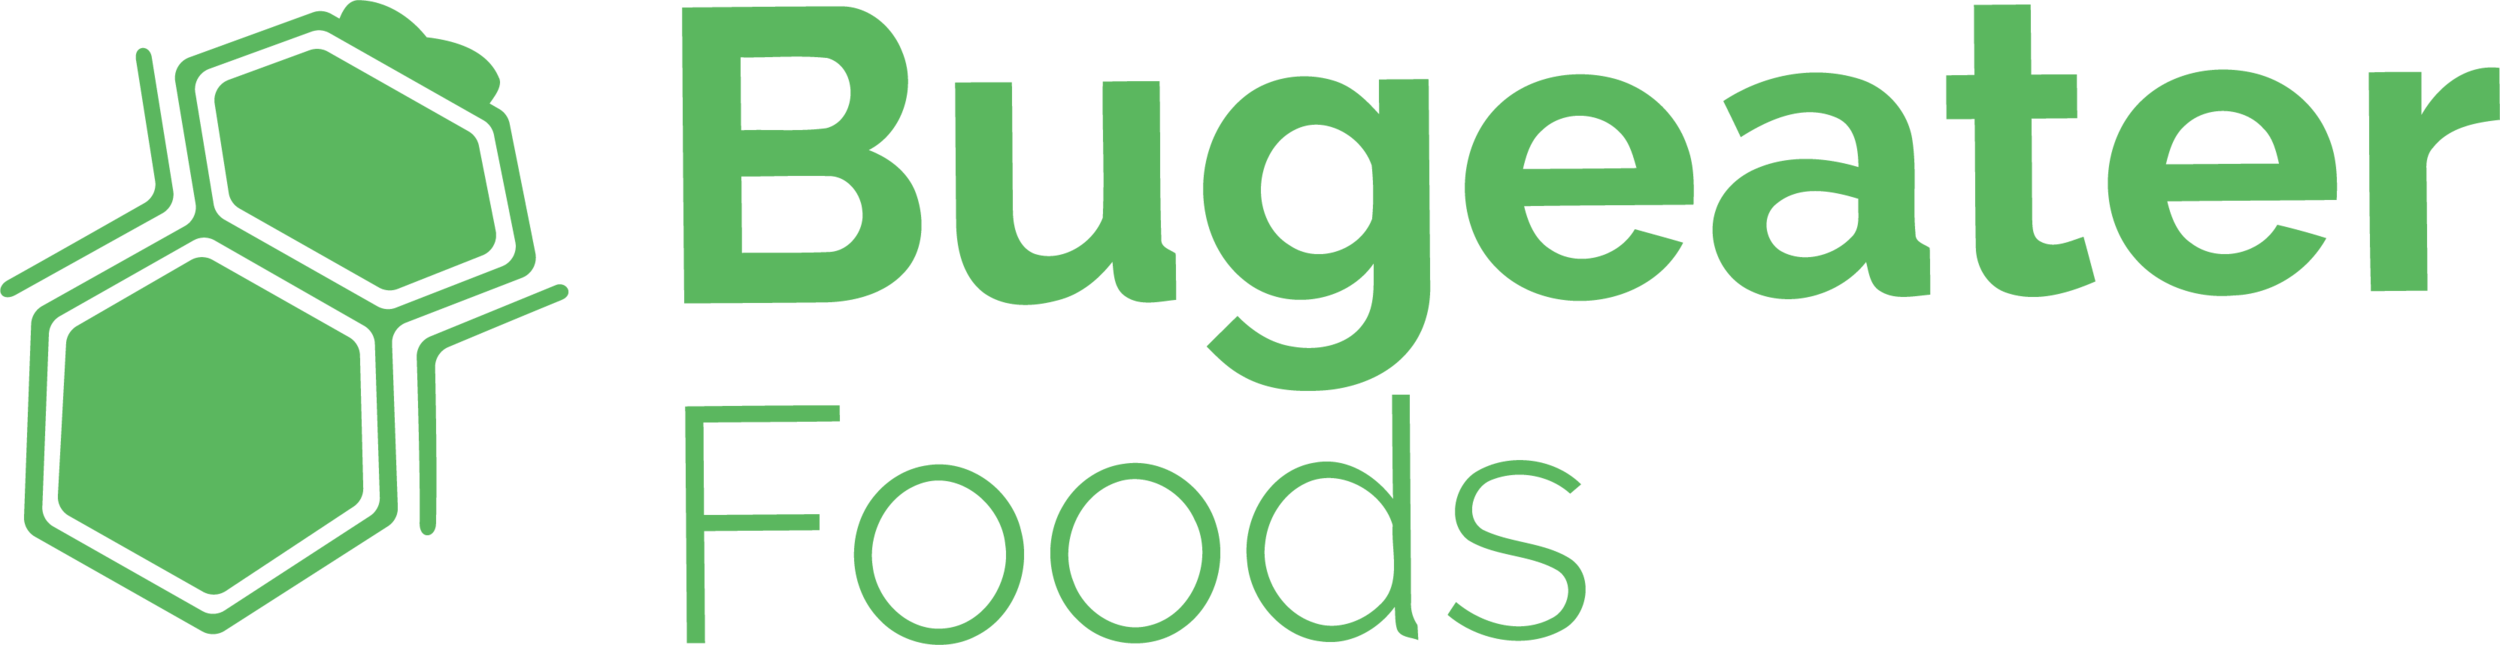 Bugeater Foods.png